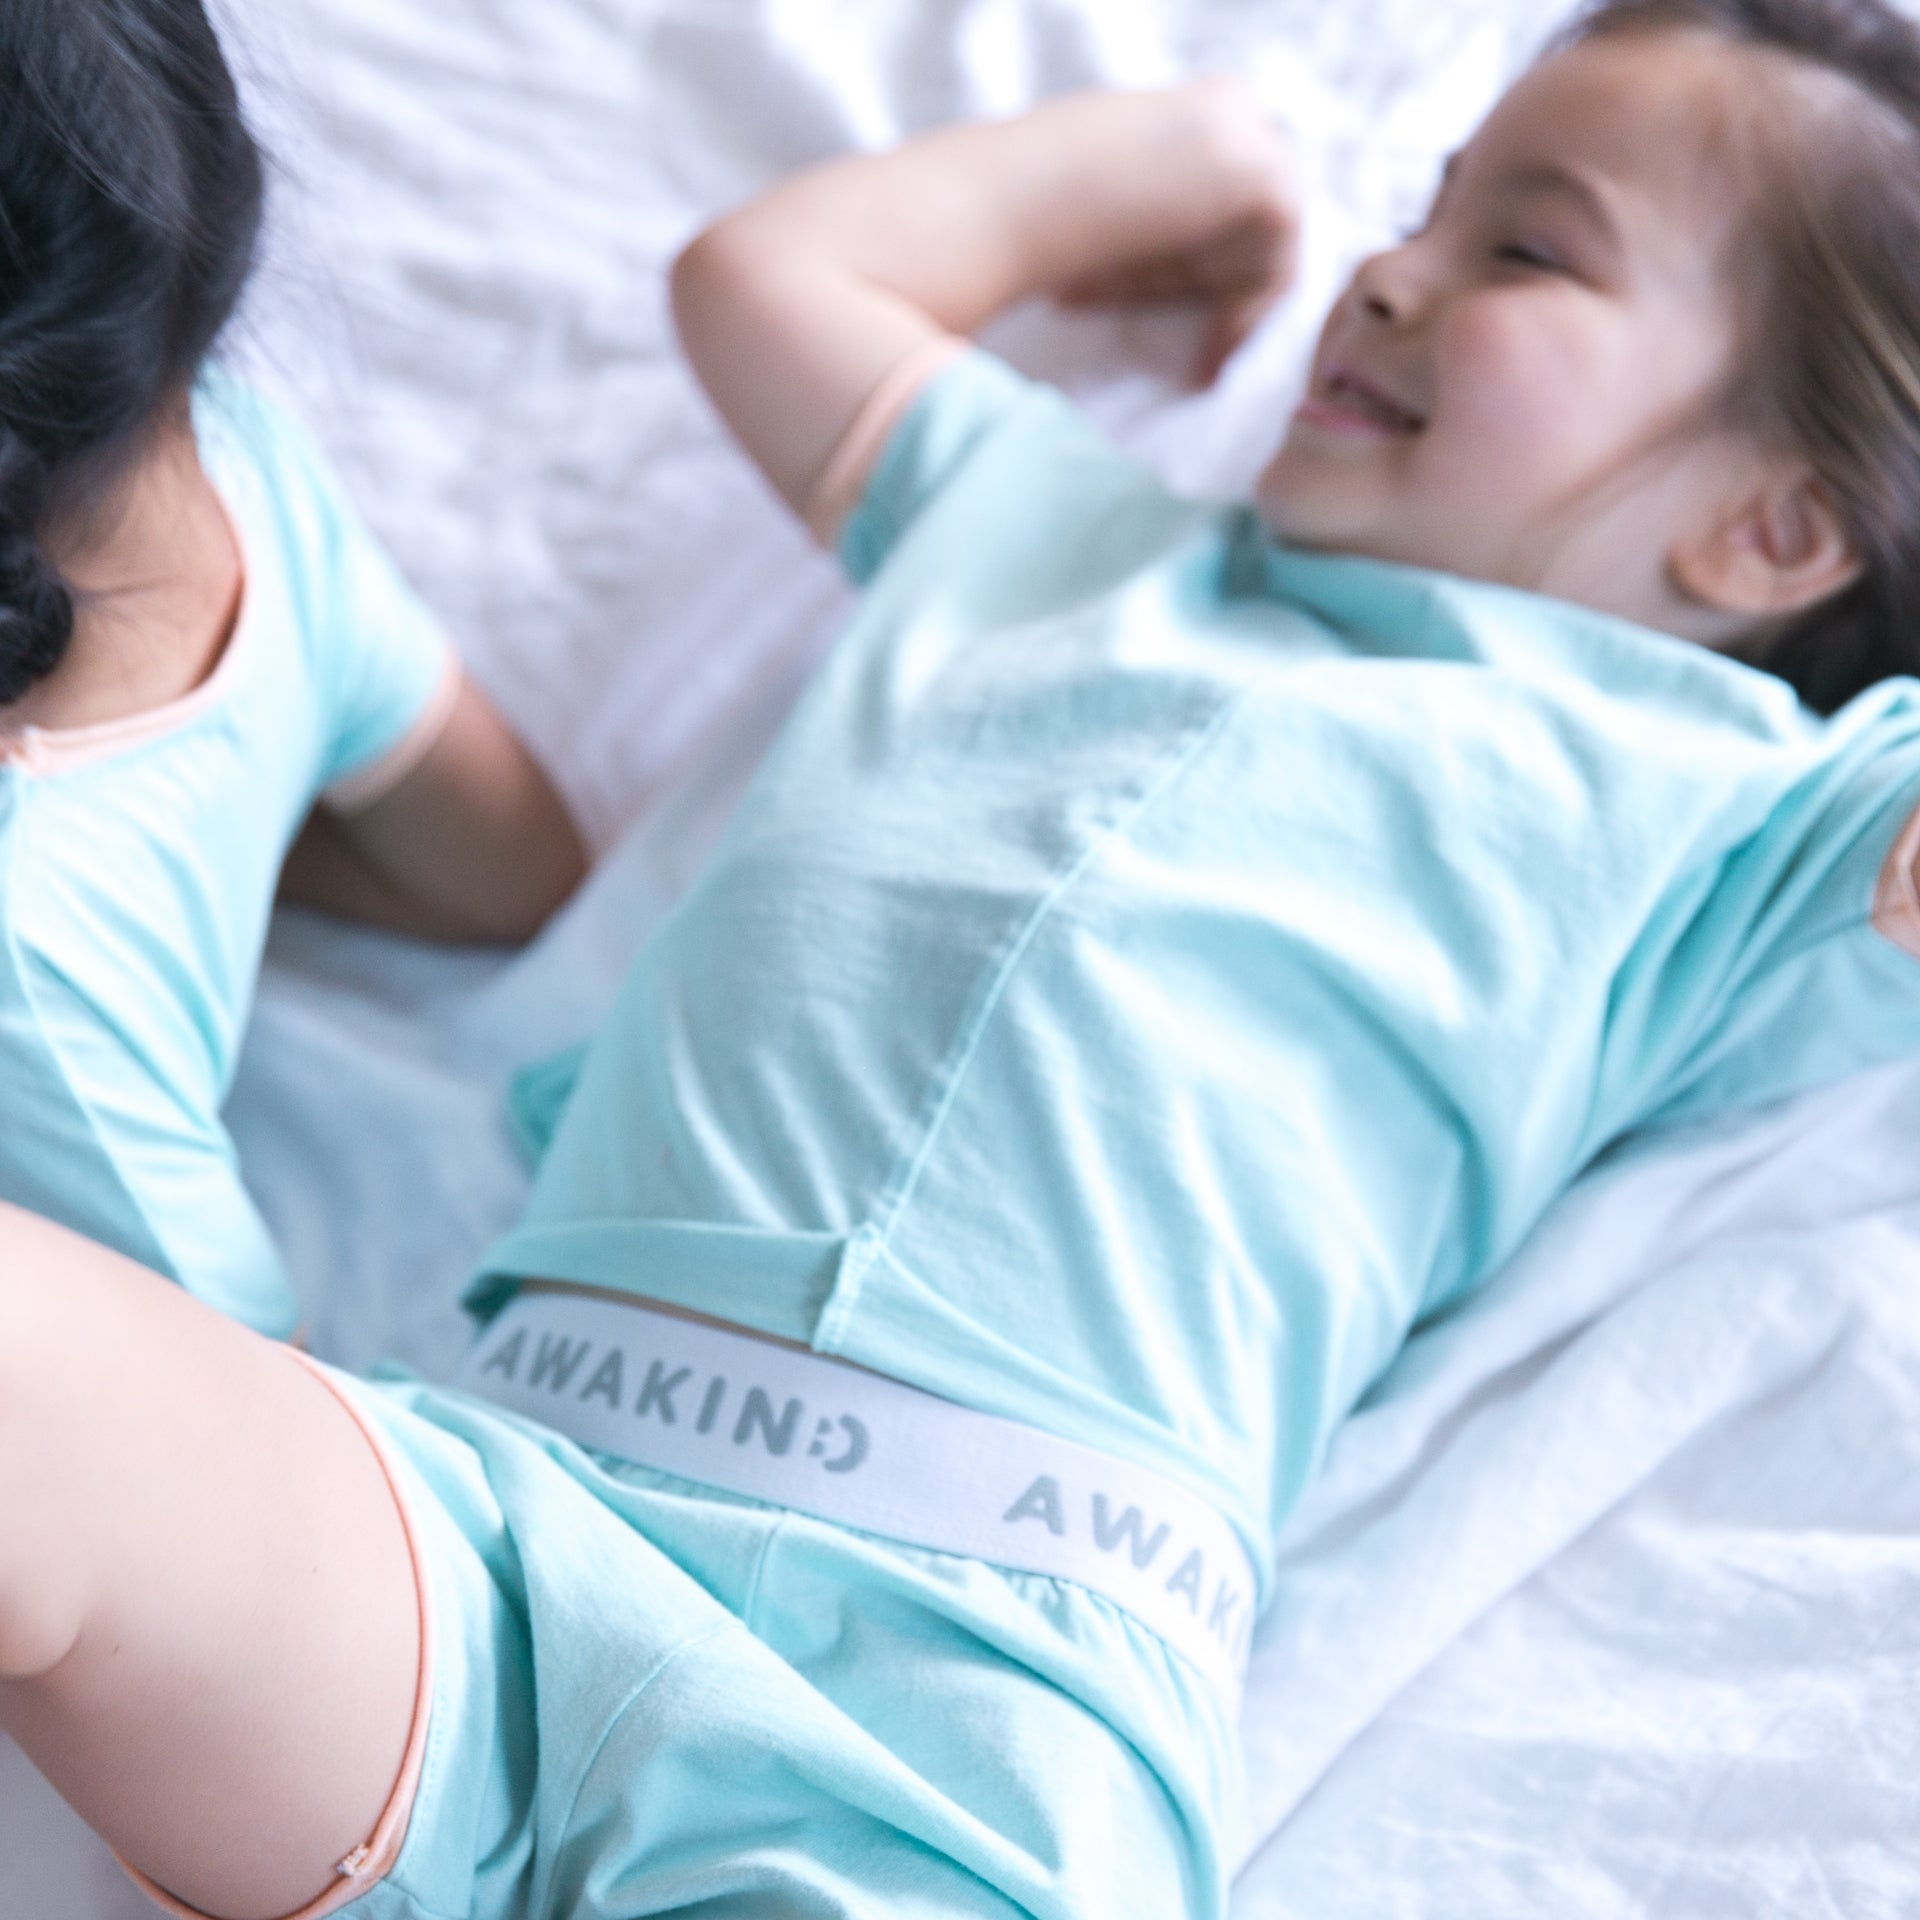 Awakind: Cotton PJ's and bedding for kids. Profits Donated to Children in Need